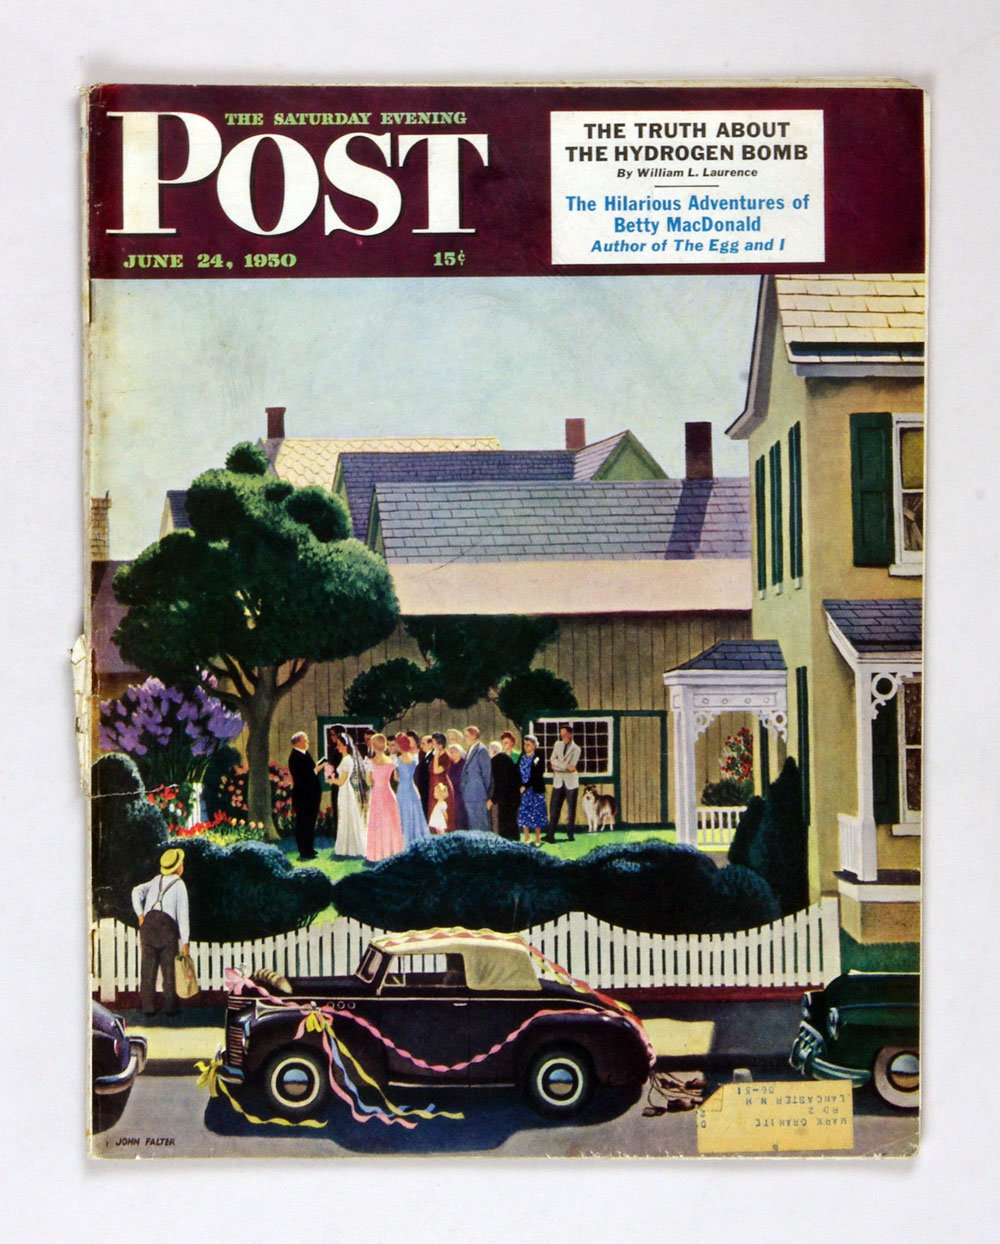 The Saturday Evening Post 1950 Jun 24 Outdoor Wedding by John Falter